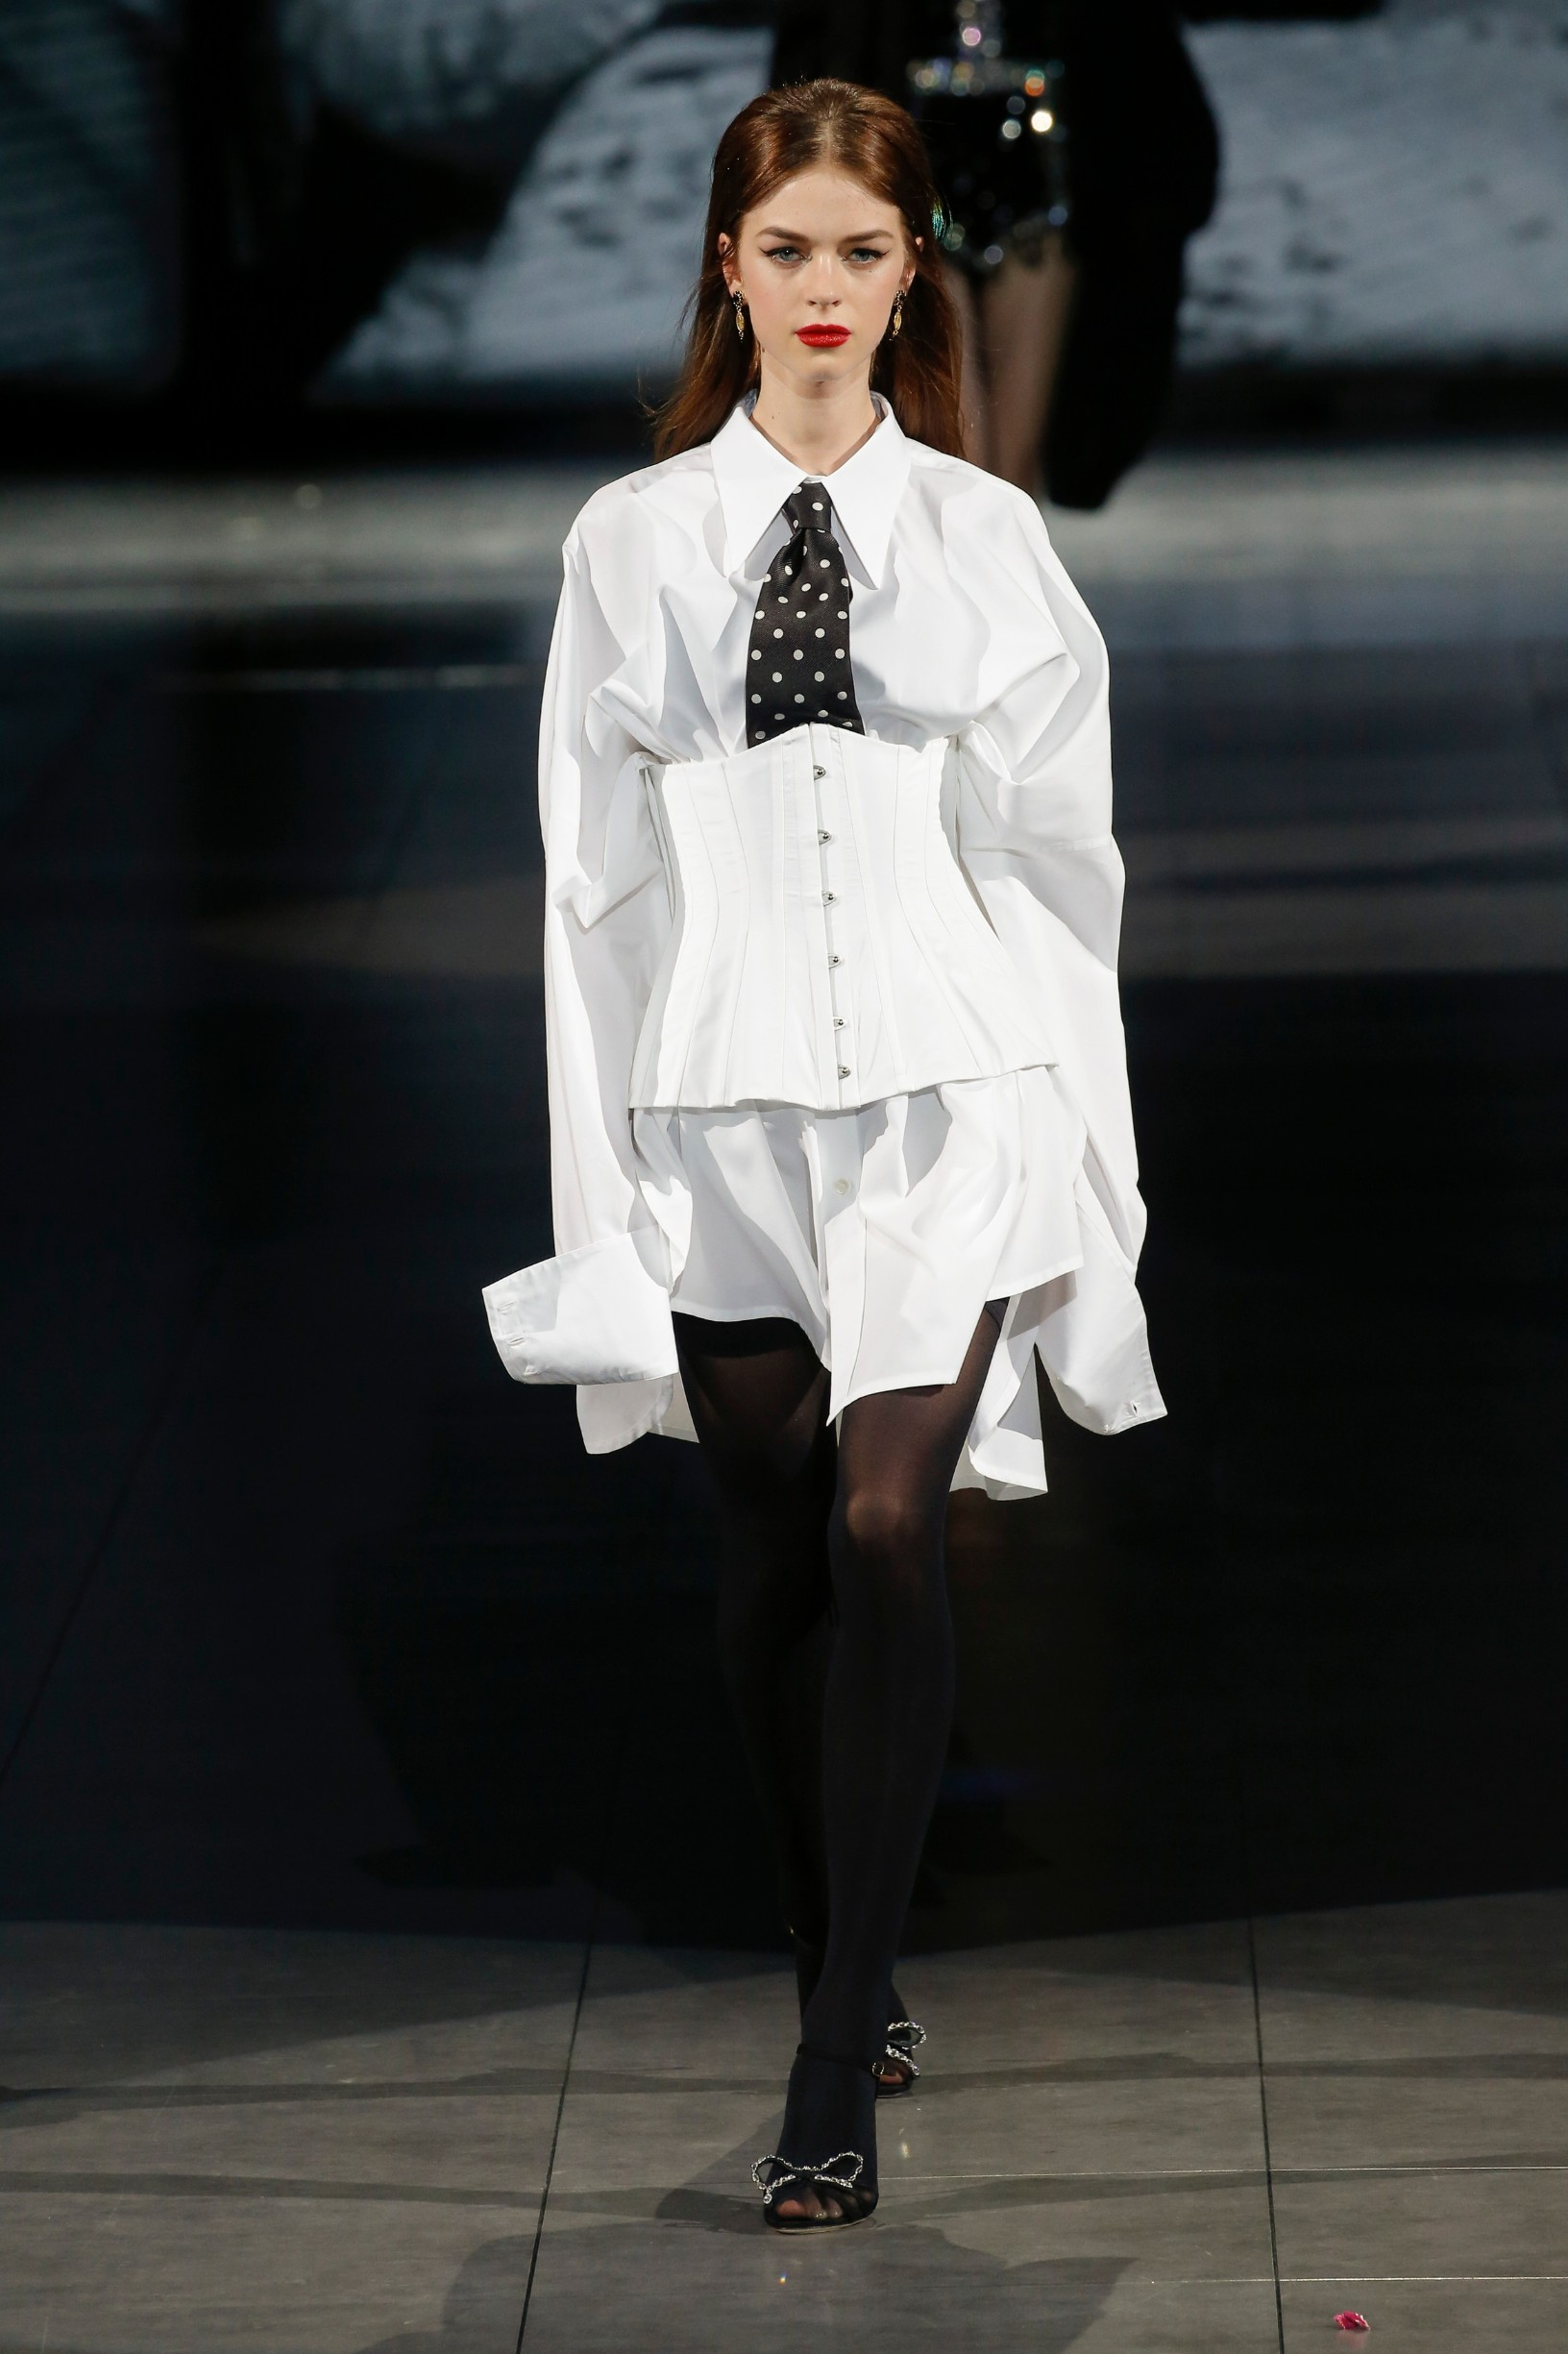 Model walks on the runway at the Dolce and Gabbana fashion show during Fall / Winter 2020 / 2021 Milan Fashion Week in Milan, Italy on Feb. 23, 2020., Image: 500555640, License: Rights-managed, Restrictions: *** World Rights ***, Model Release: no, Credit line: Jonas Gustavsson / ddp USA / Profimedia